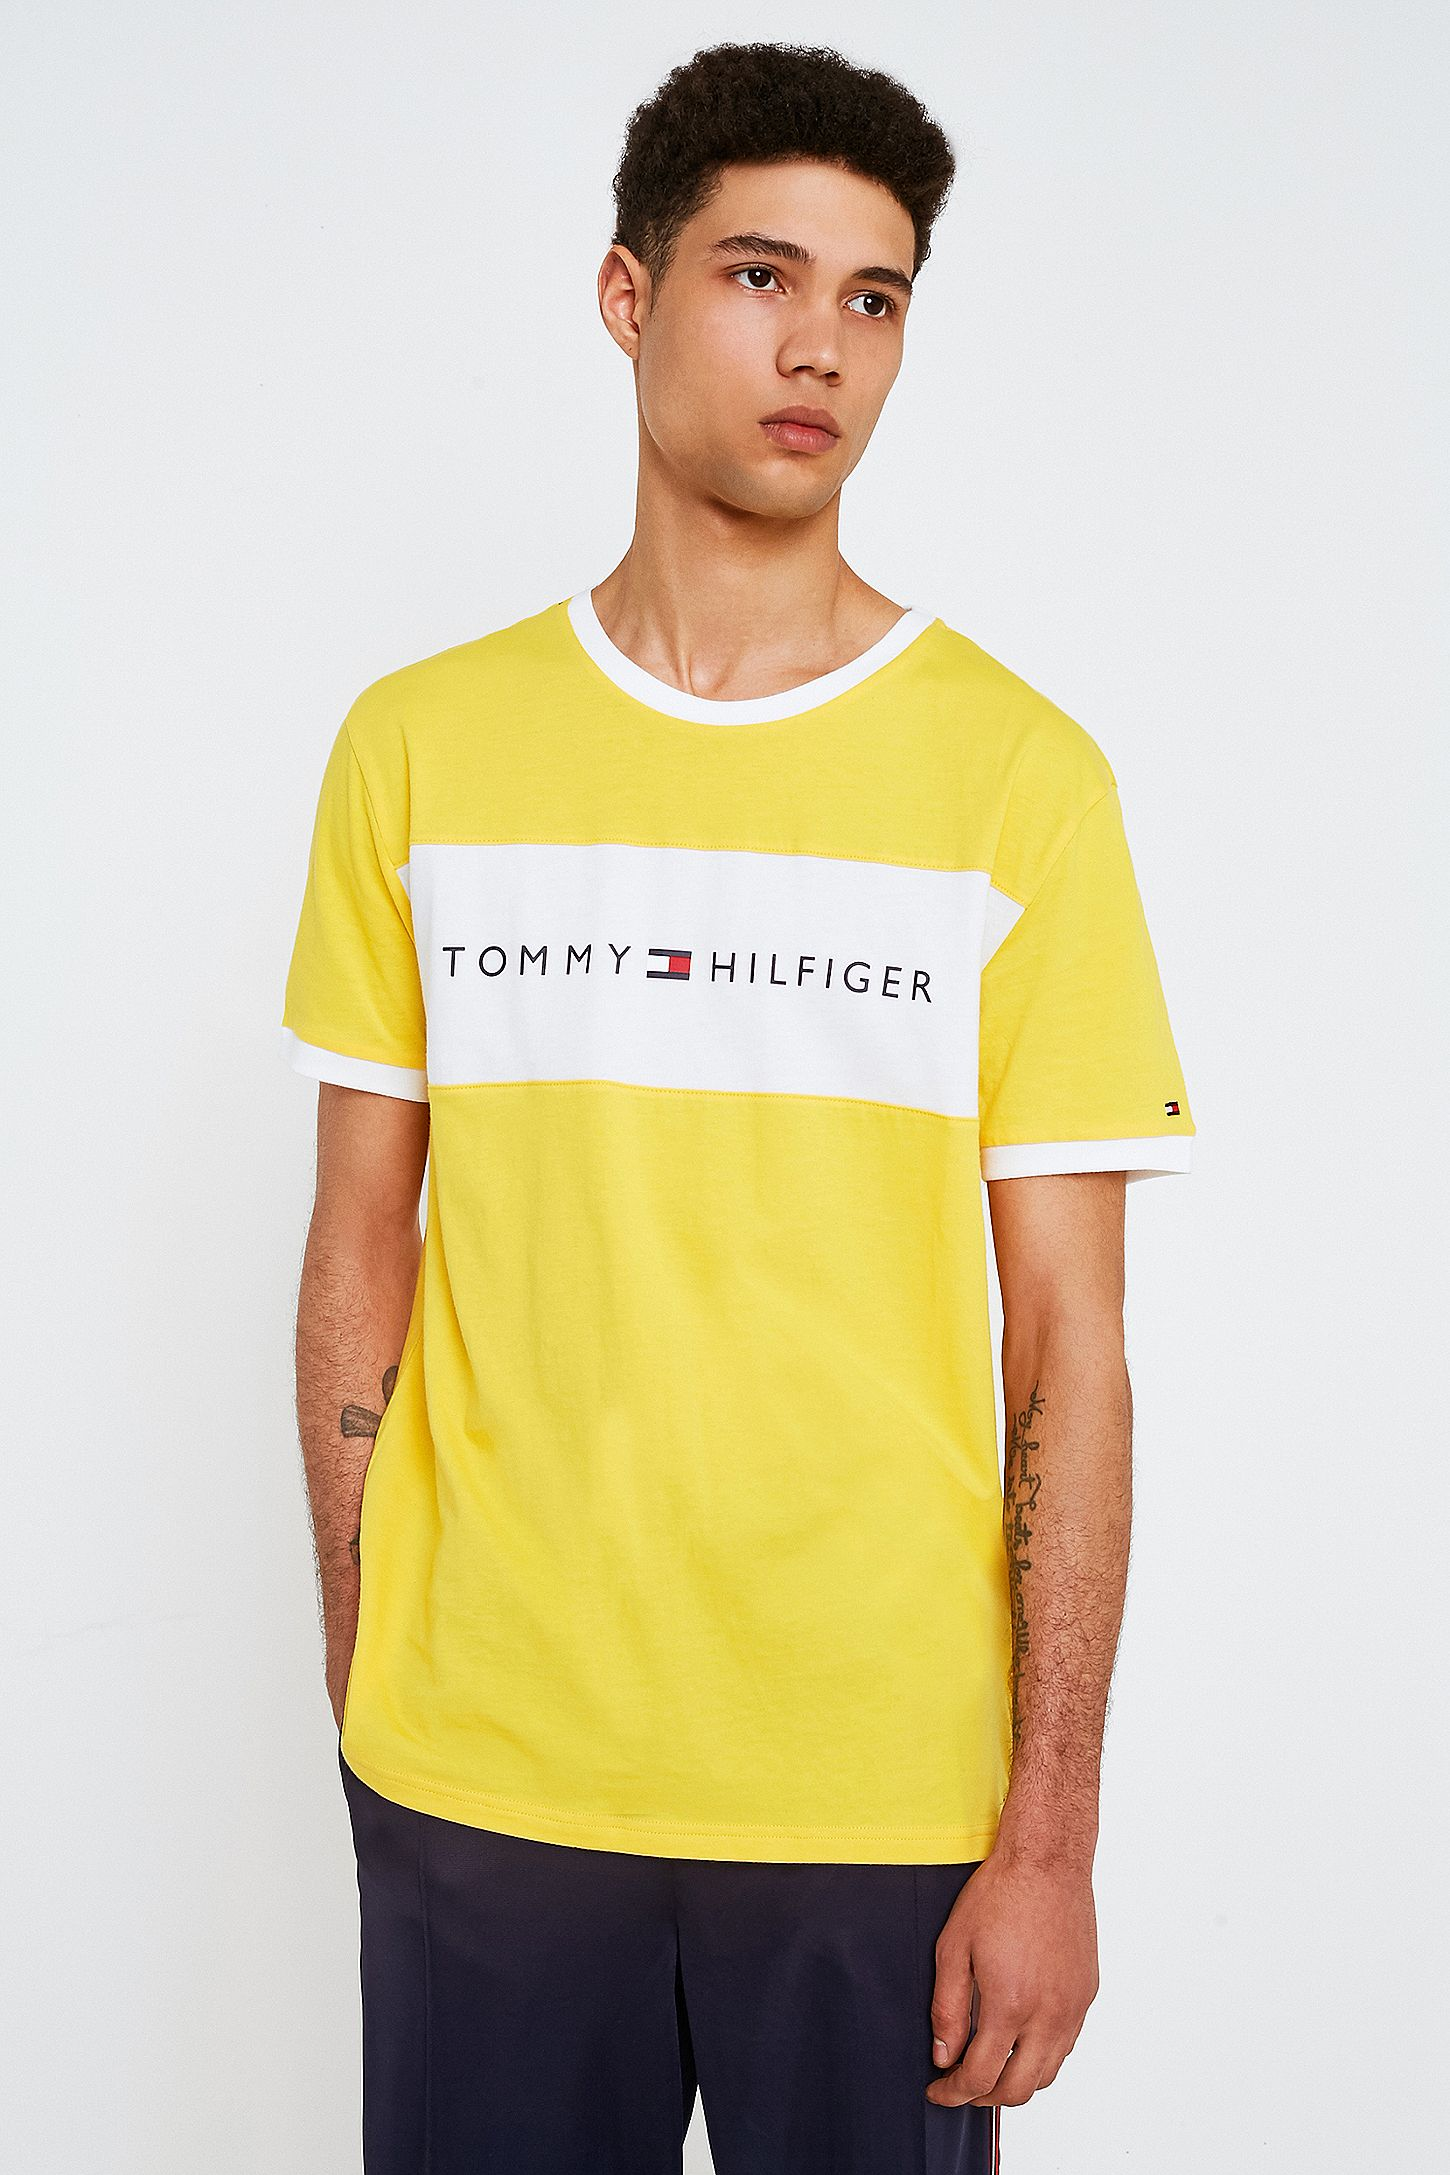 730529b61413 Tommy Hilfiger Yellow Flag Logo T-Shirt. Click on image to zoom. Hover to  zoom. Double Tap to Zoom